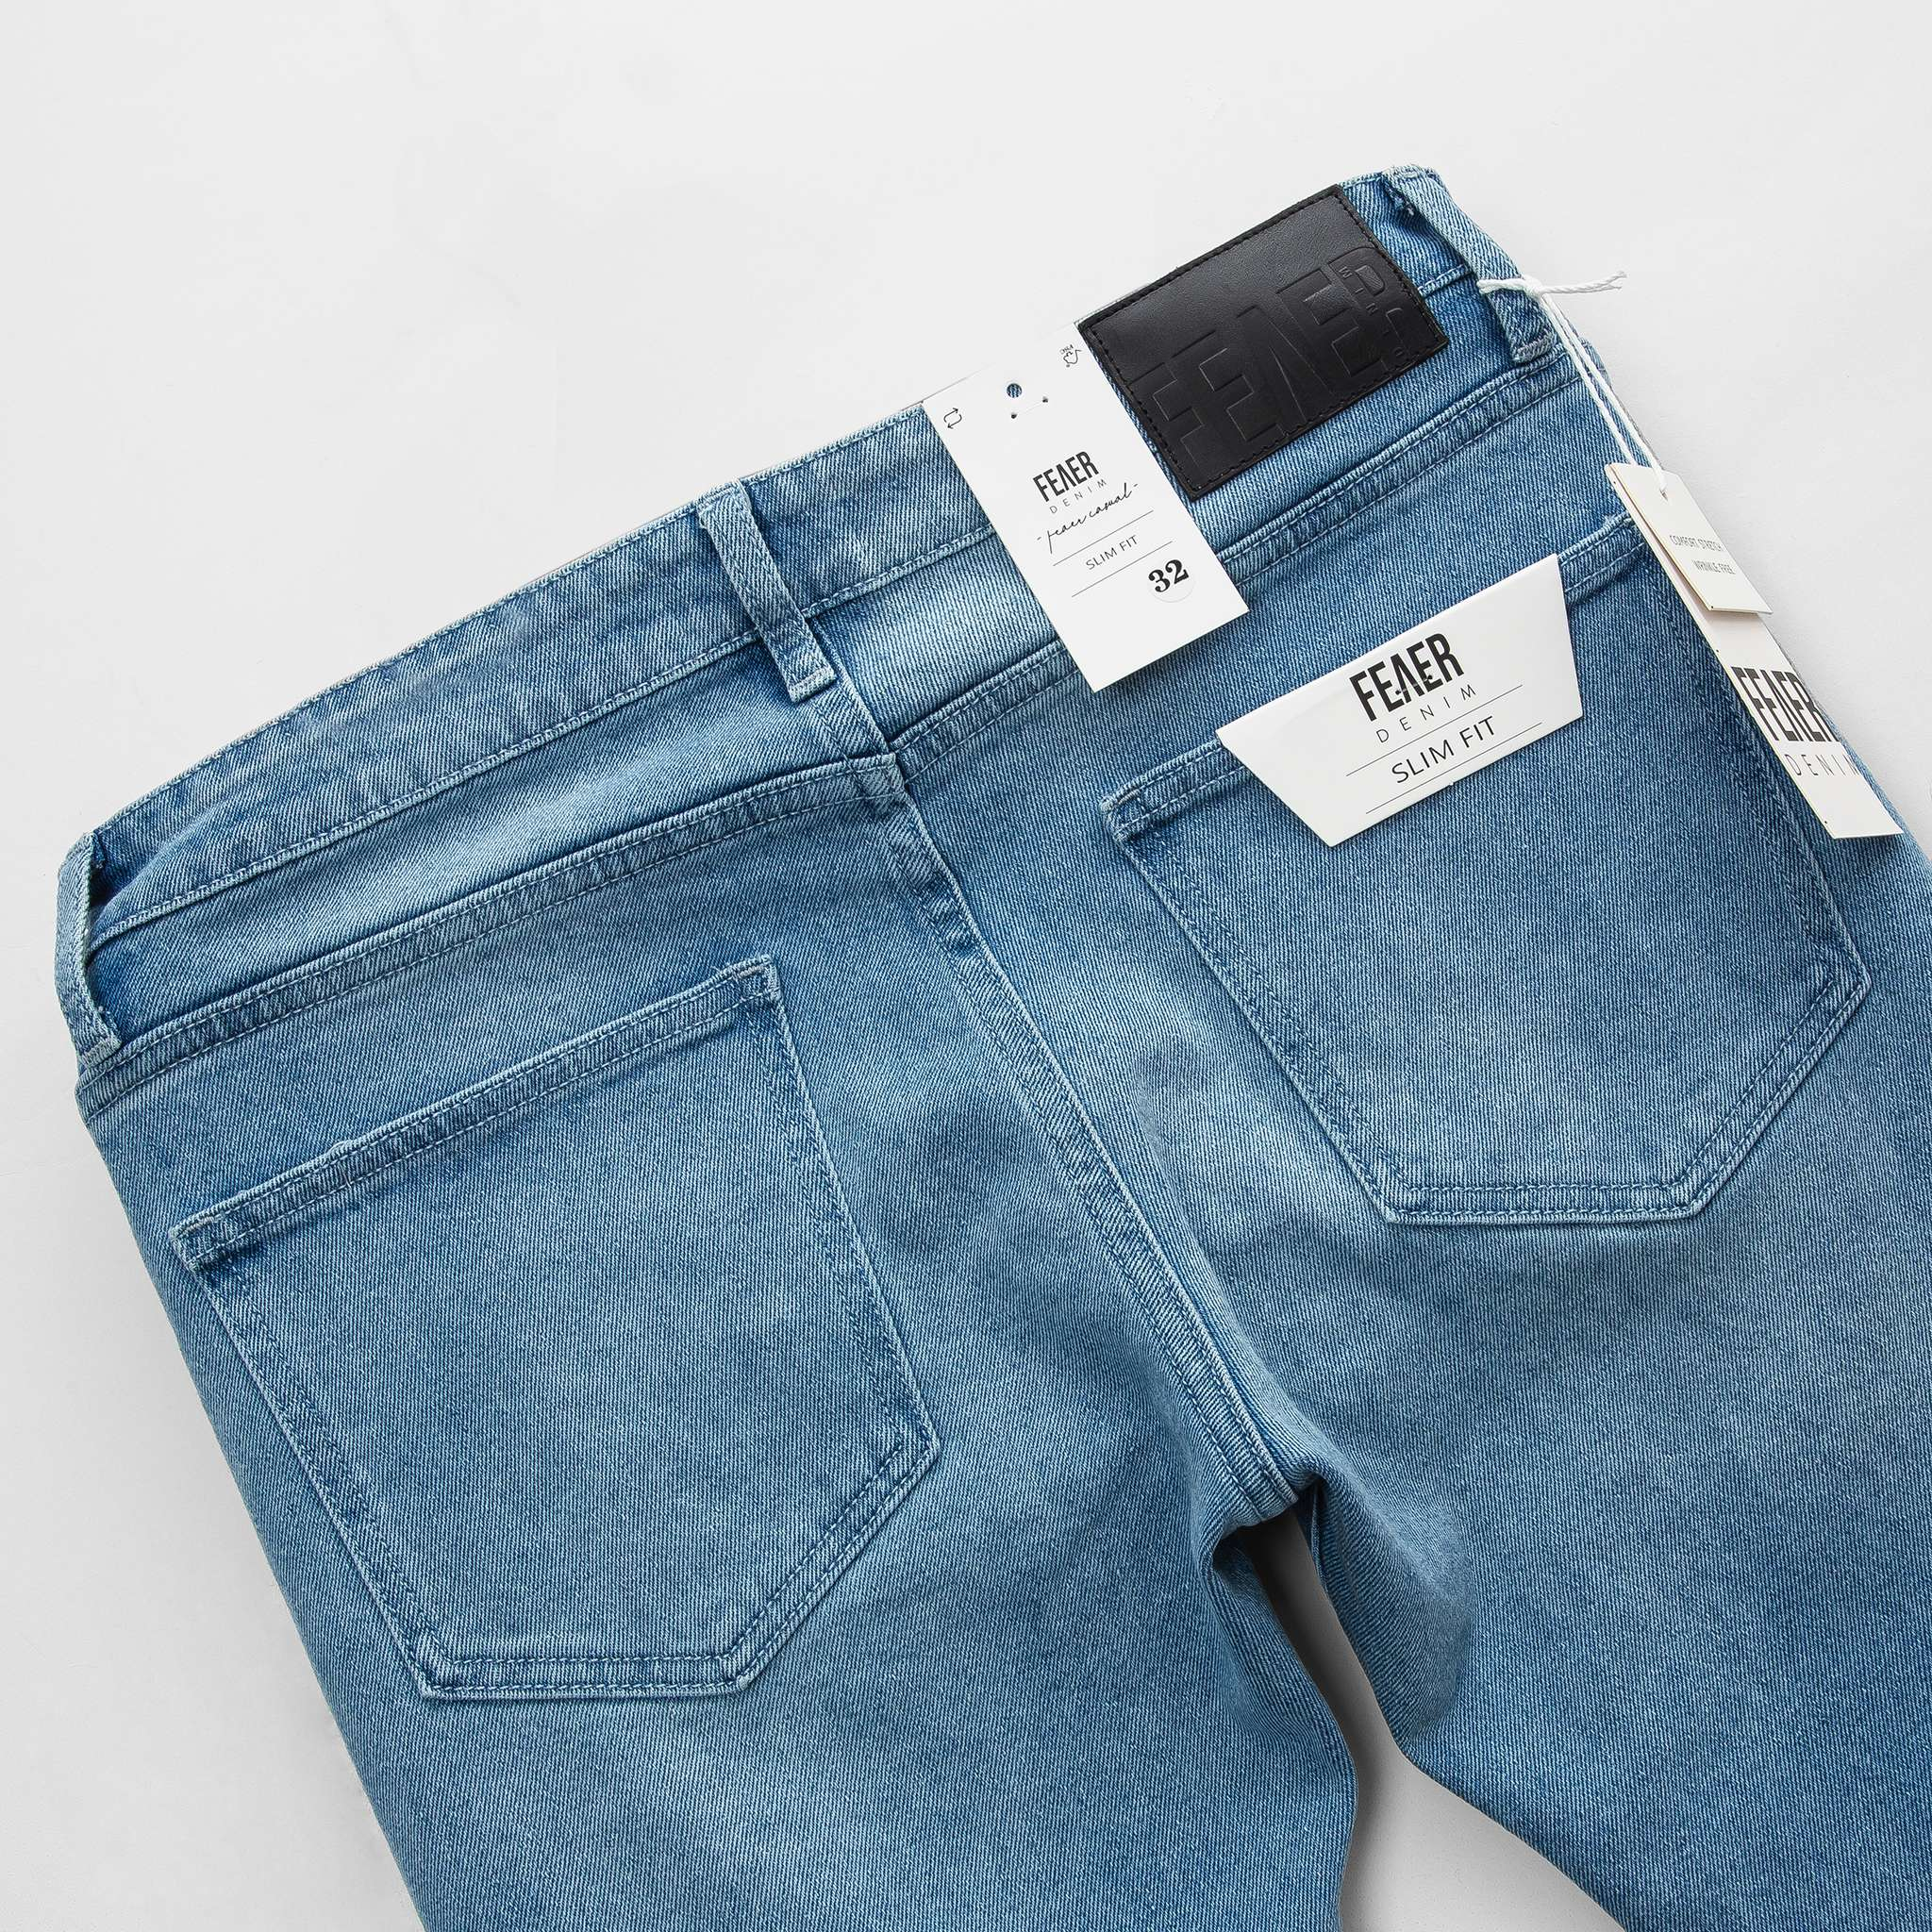 SP274 - Quần Jeans Skinny Butterfly Blue